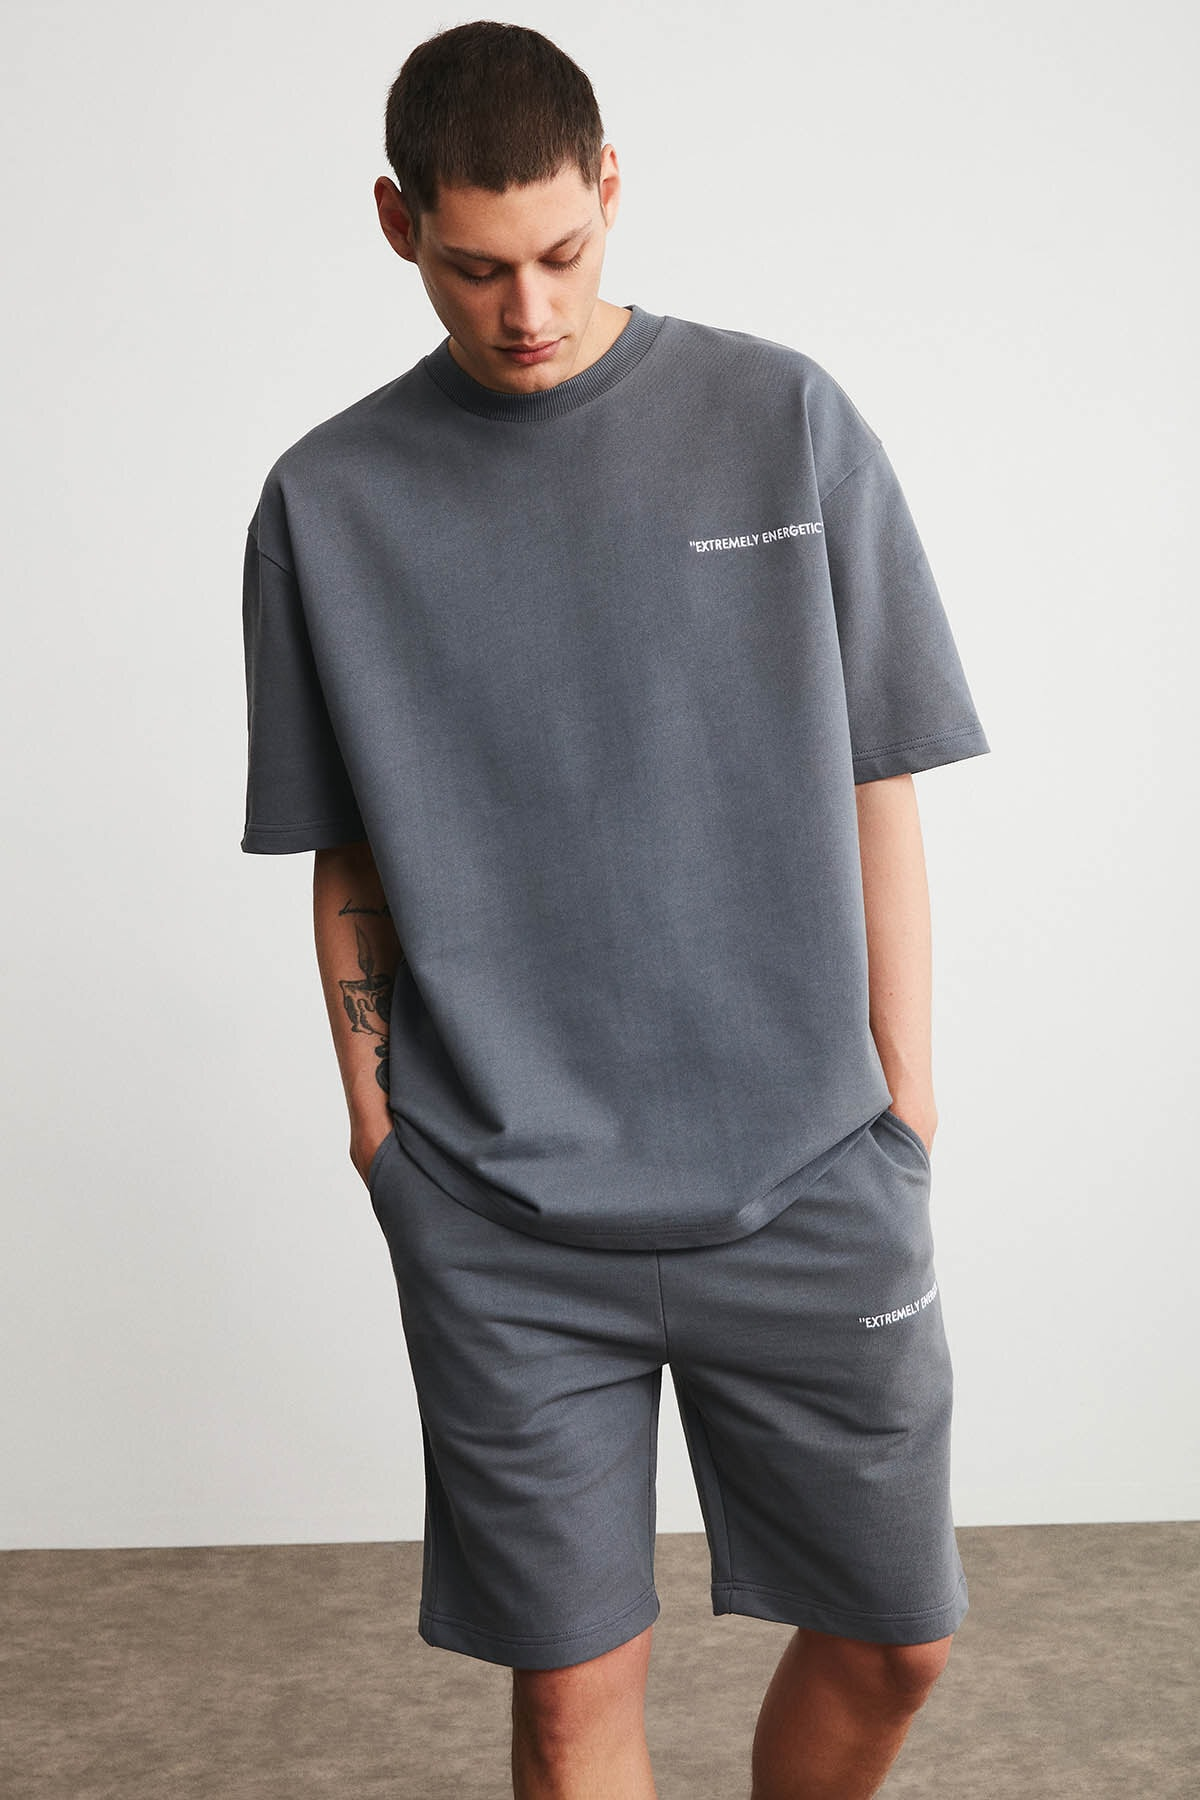 Men's Plain Gray Cotton Embroidery Detailed Basic Comfort Fit Crew Neck Shorts And T-shirt Tracksuit Set